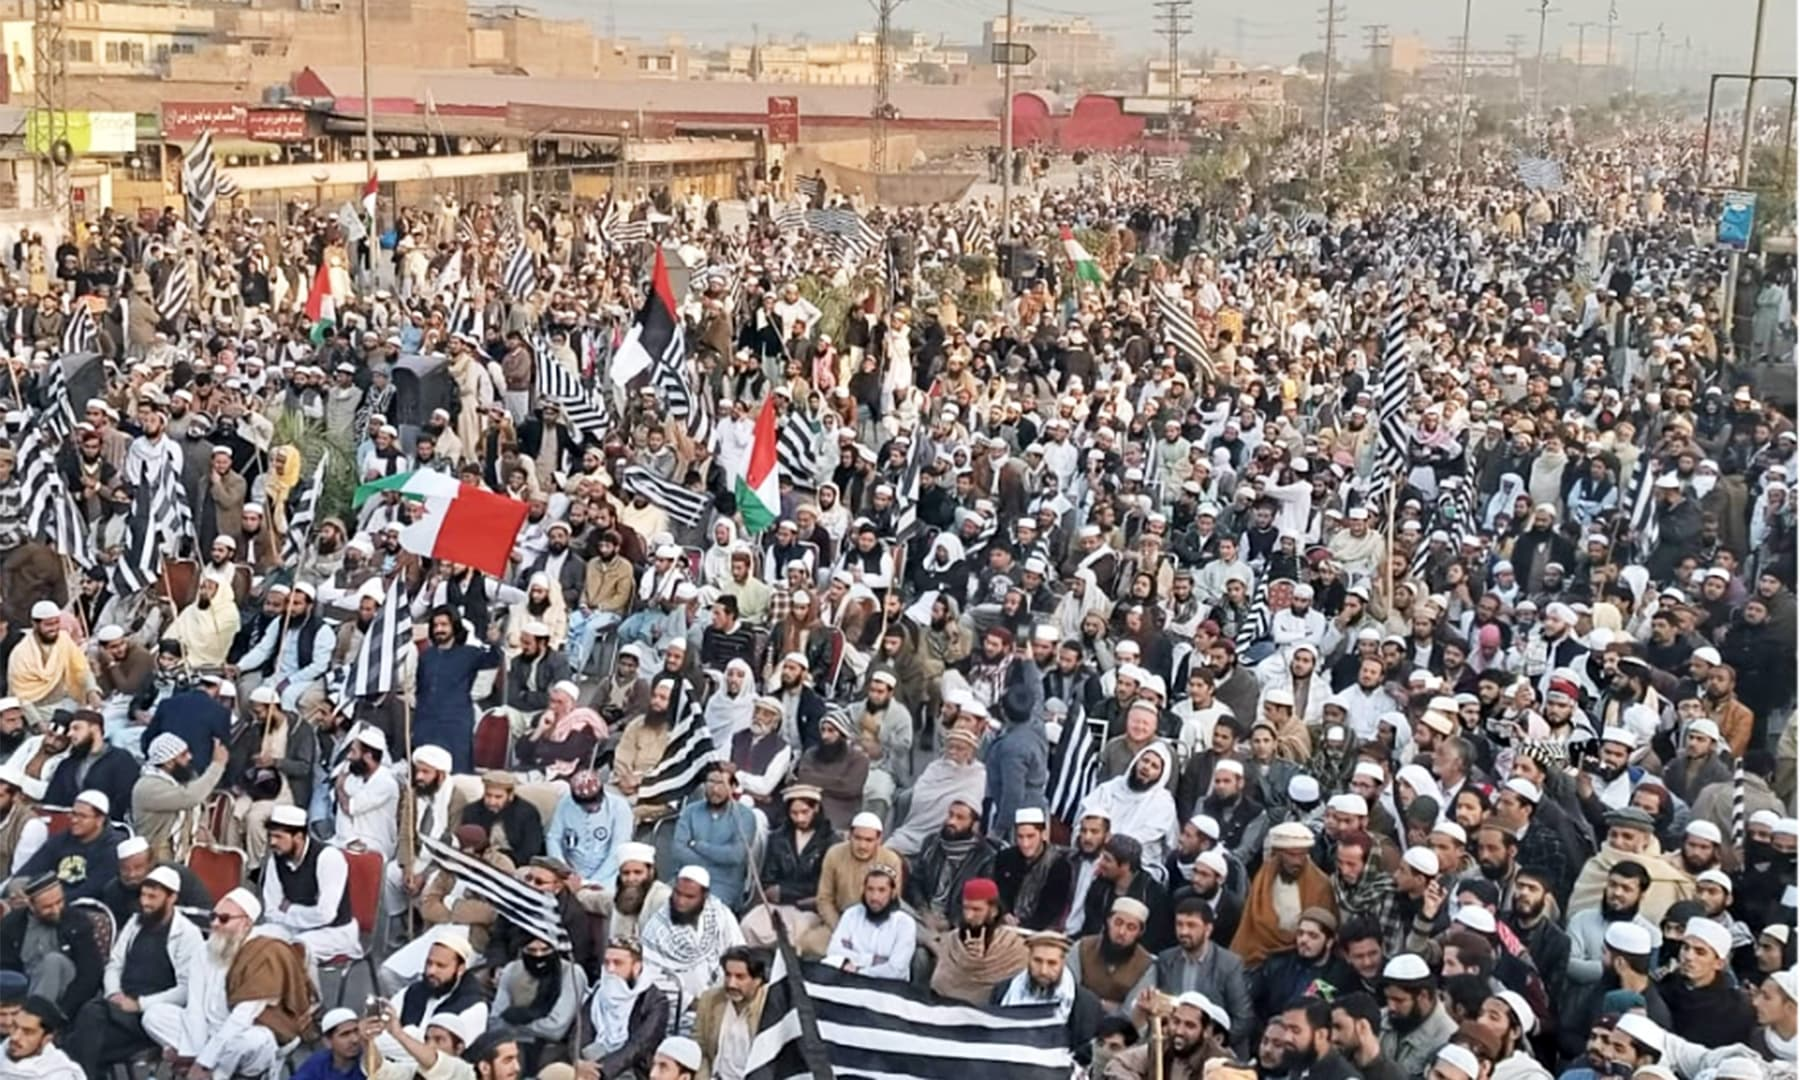 A large number of supporters gathered to hear the maulana speak in Peshawar on Sunday. — Photo by author